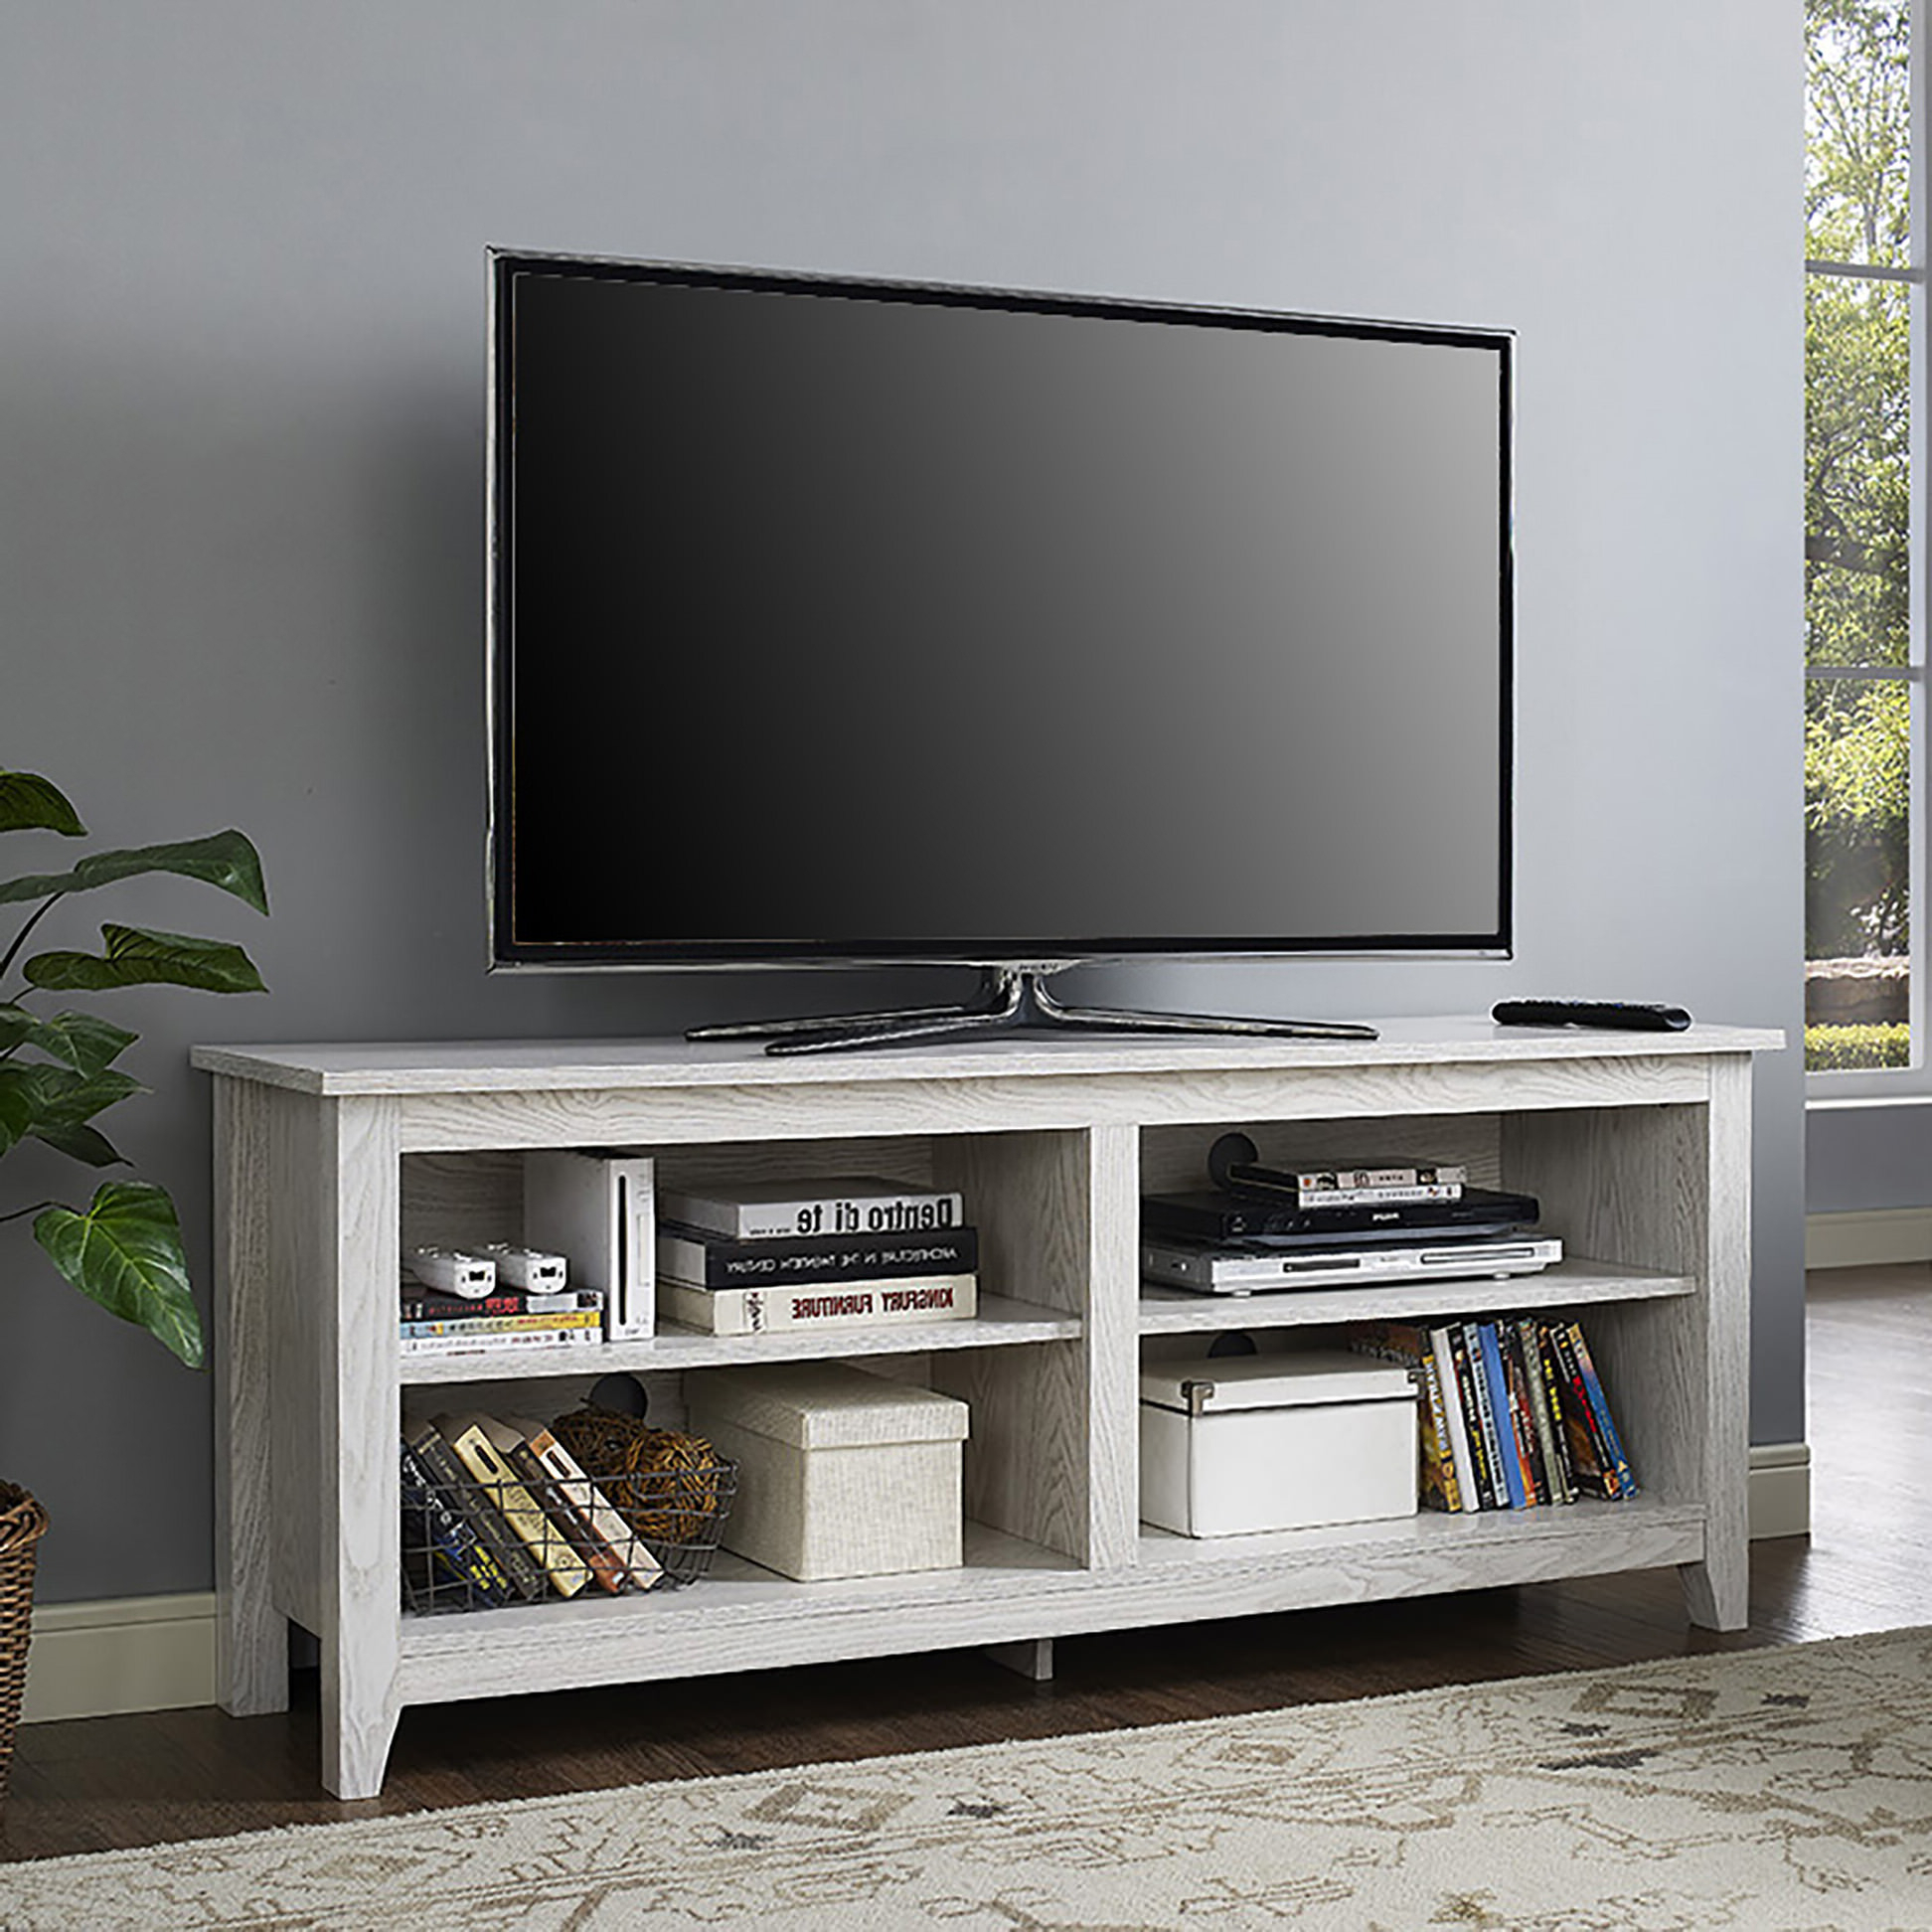 Most Recent 58 Inch White Wash Wood Tv Standwalker Edison Pertaining To White And Wood Tv Stands (View 15 of 20)